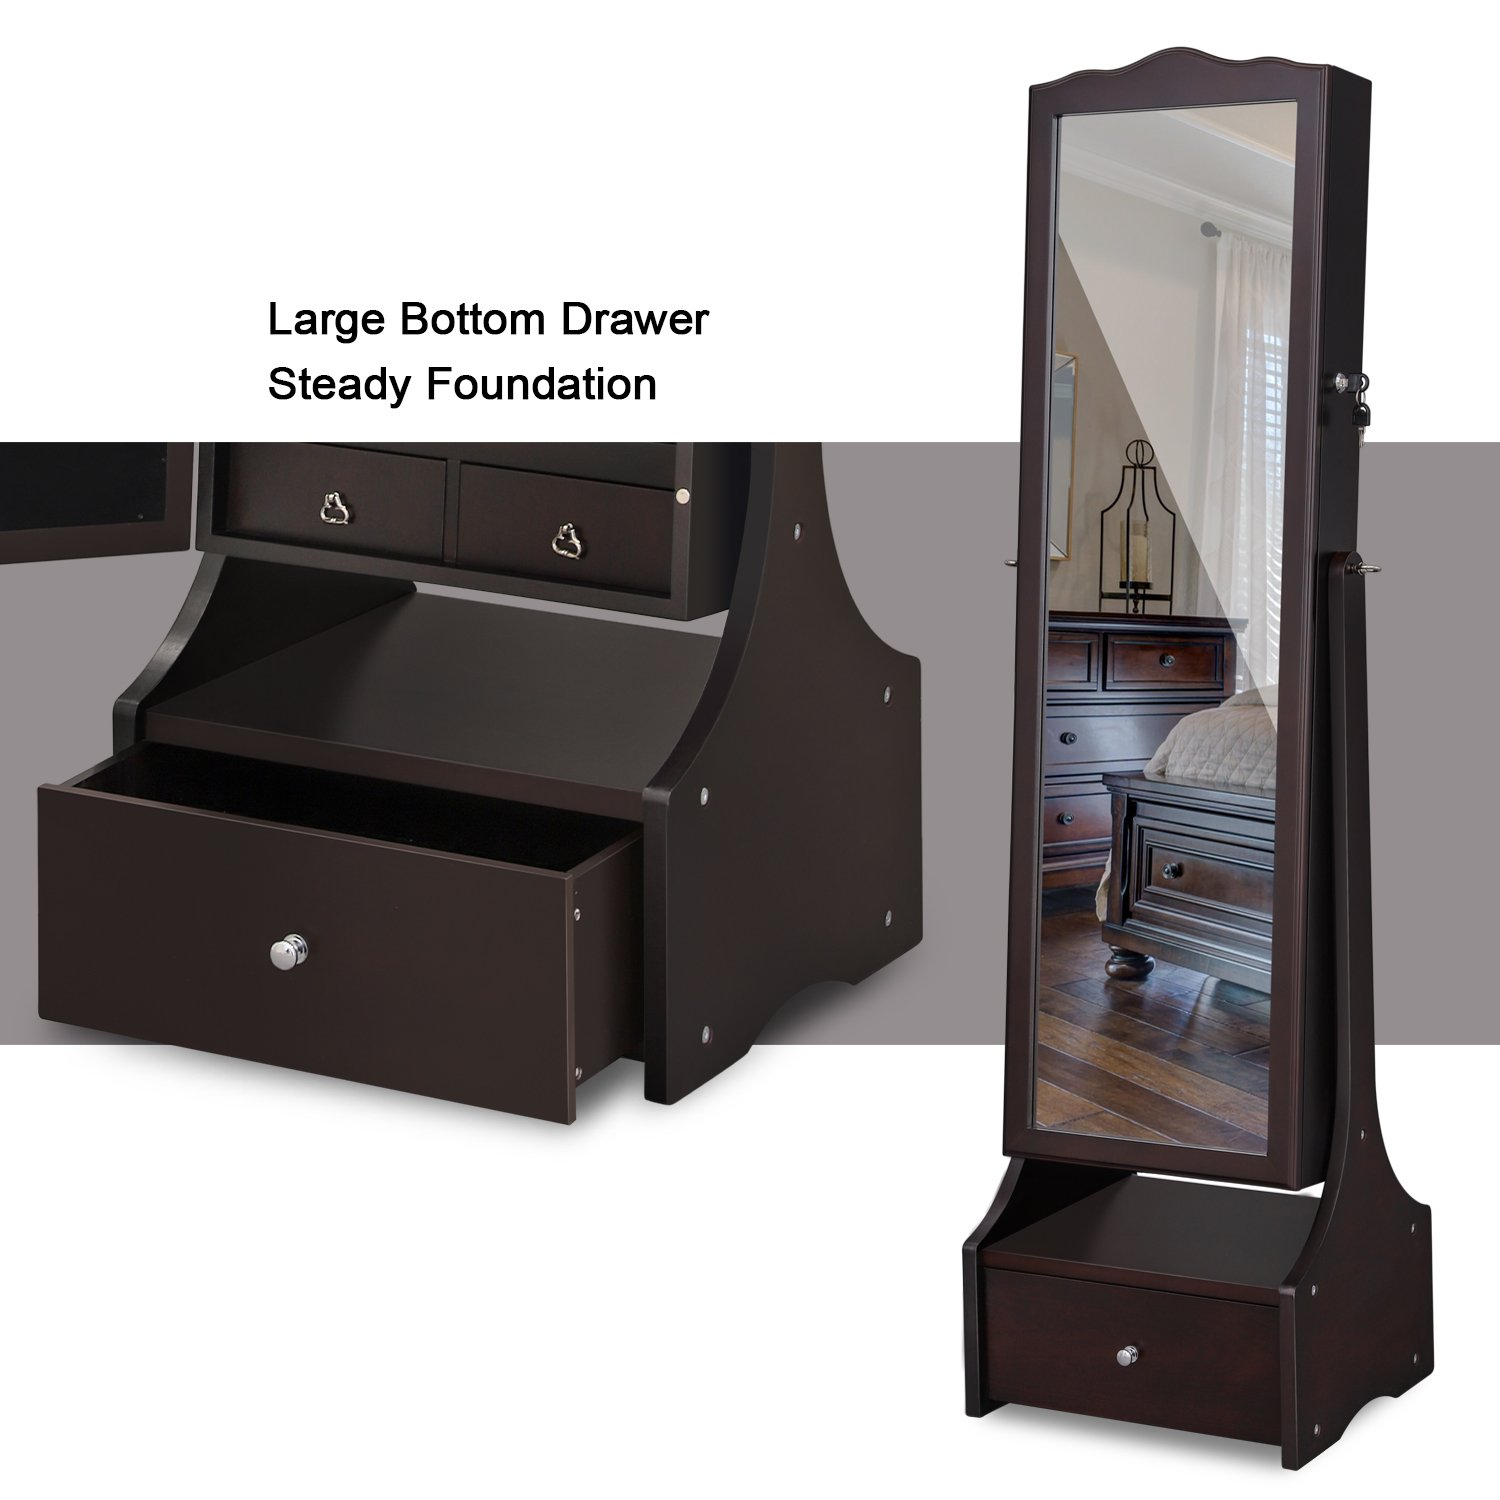 SONGMICS LED Jewelry Cabinet Lockable Jewelry Armoire with Full Length Mirror, Makeup Tray and Large Drawer Base Brown Patented Mother's Day Gift UJJC87BR by SONGMICS (Image #5)